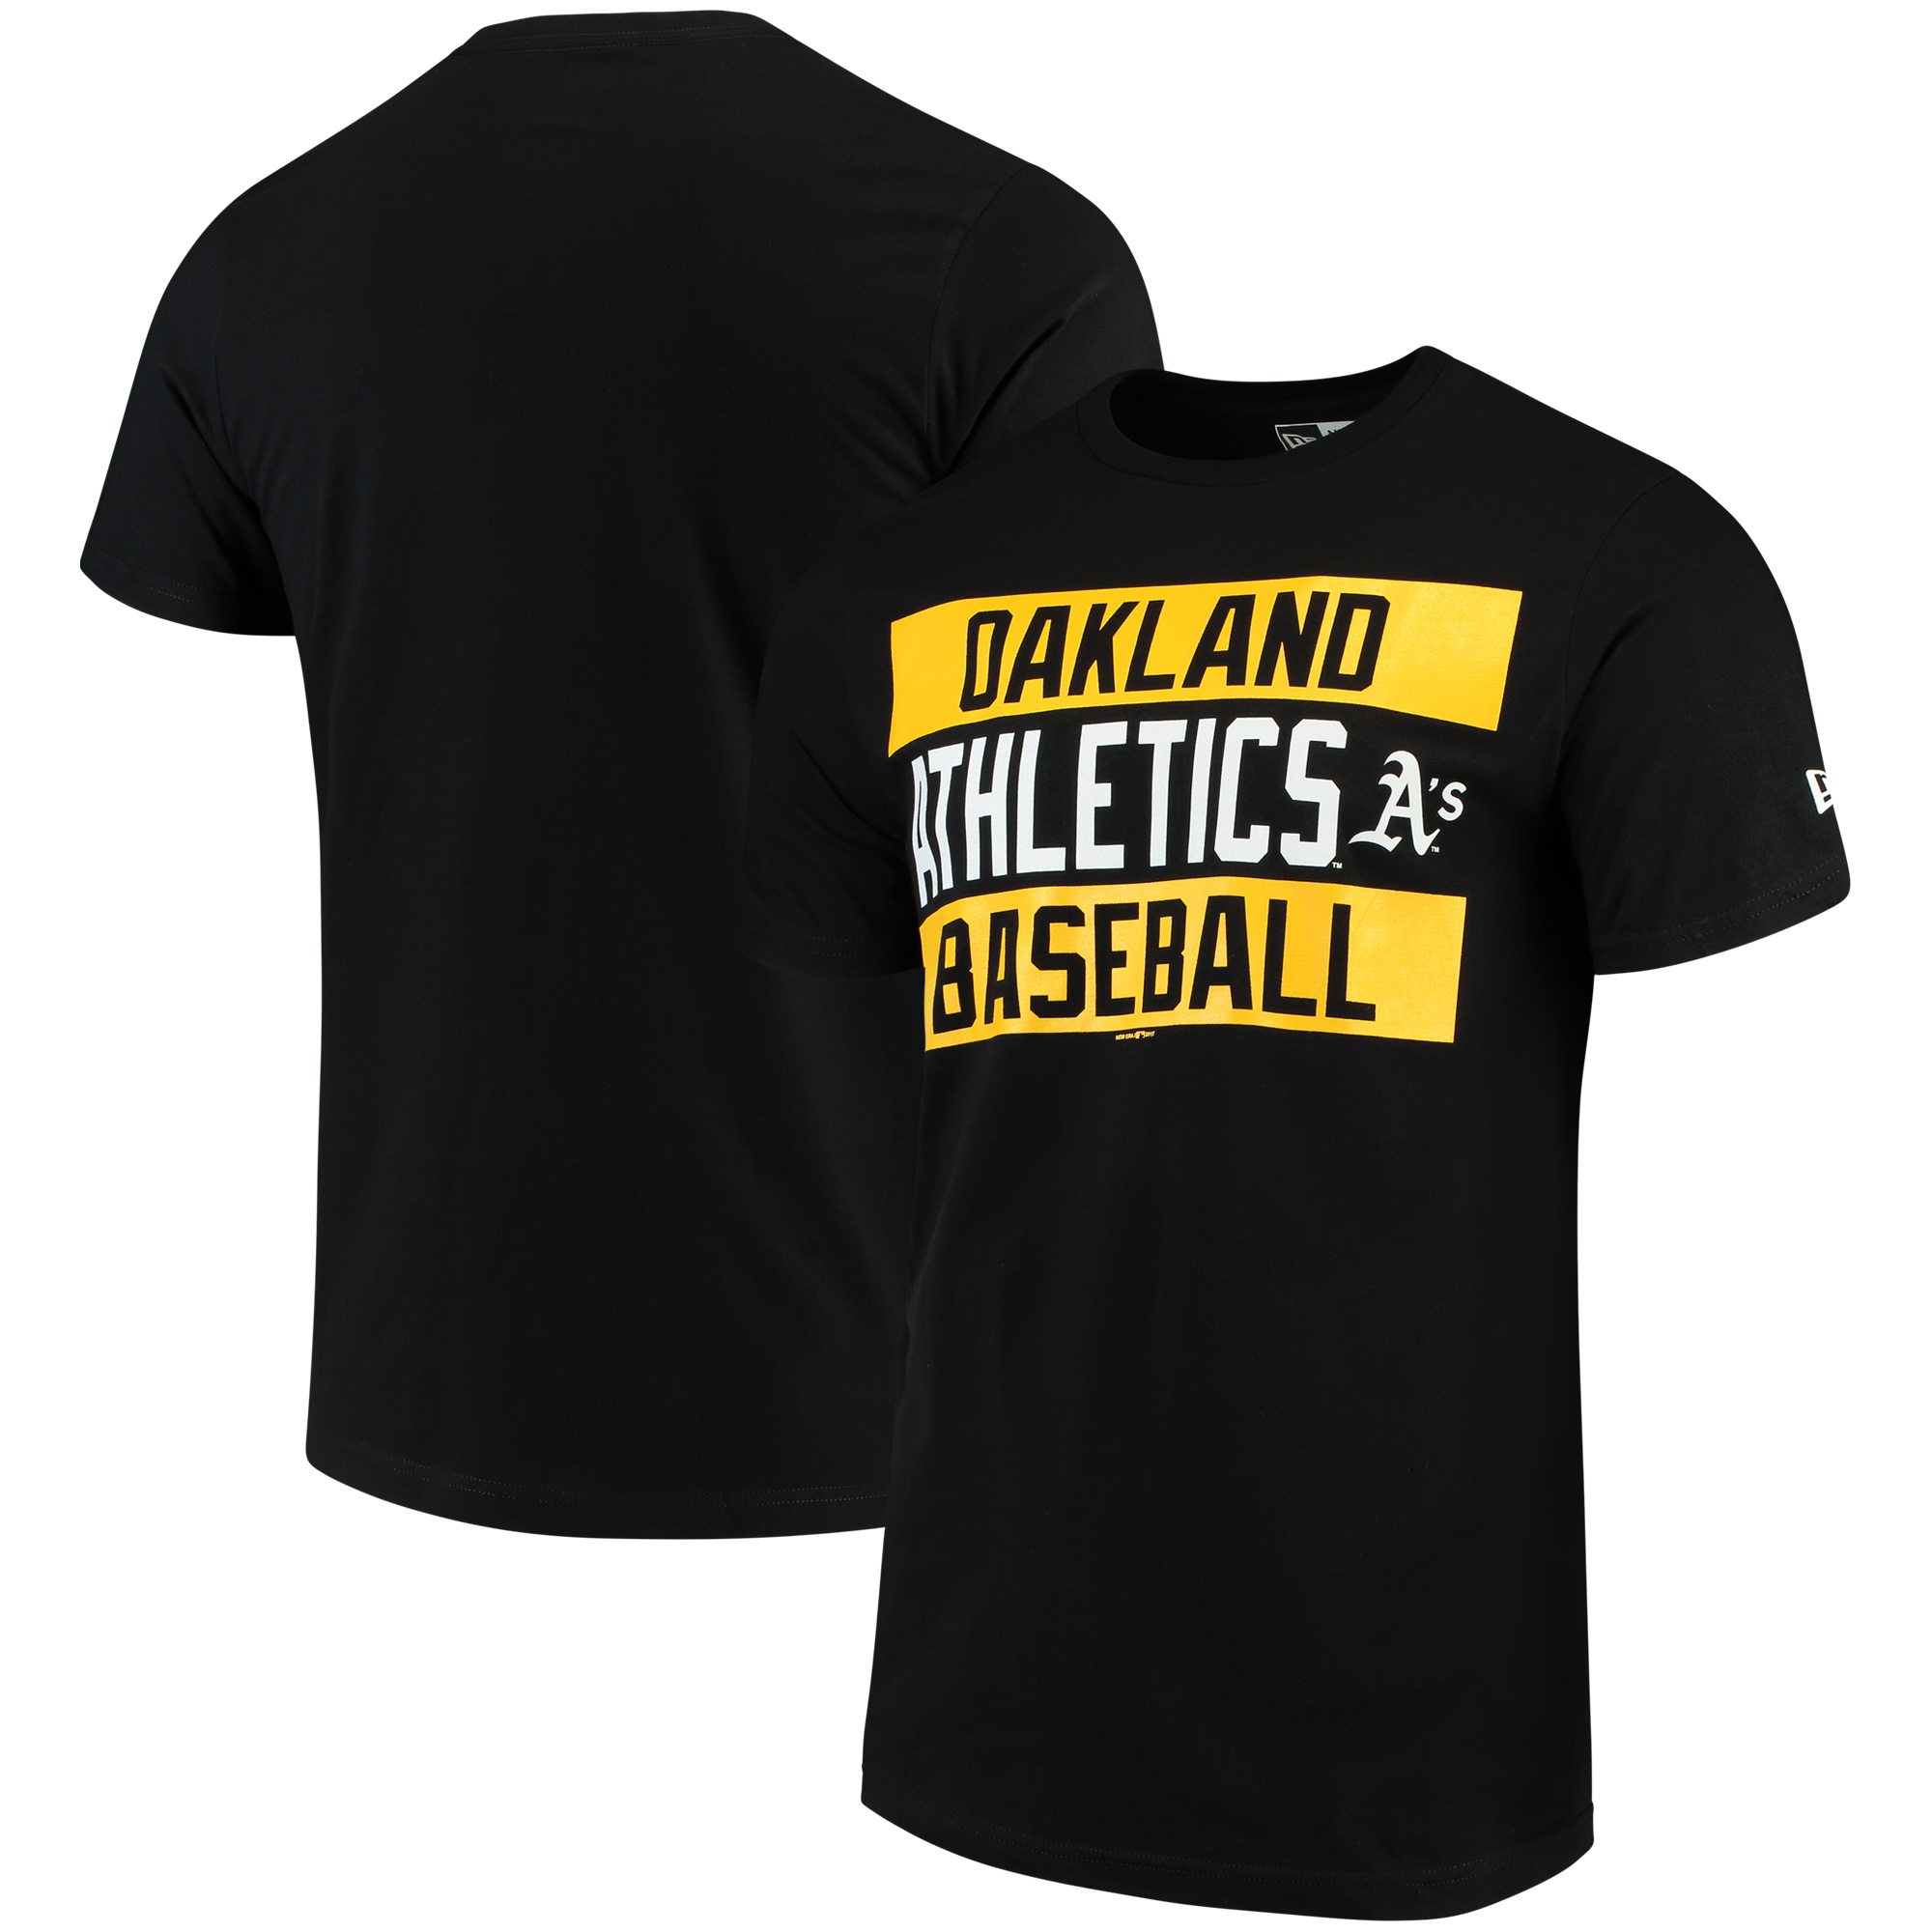 Oakland Athletics New Era Bars Jersey T-Shirt - Black